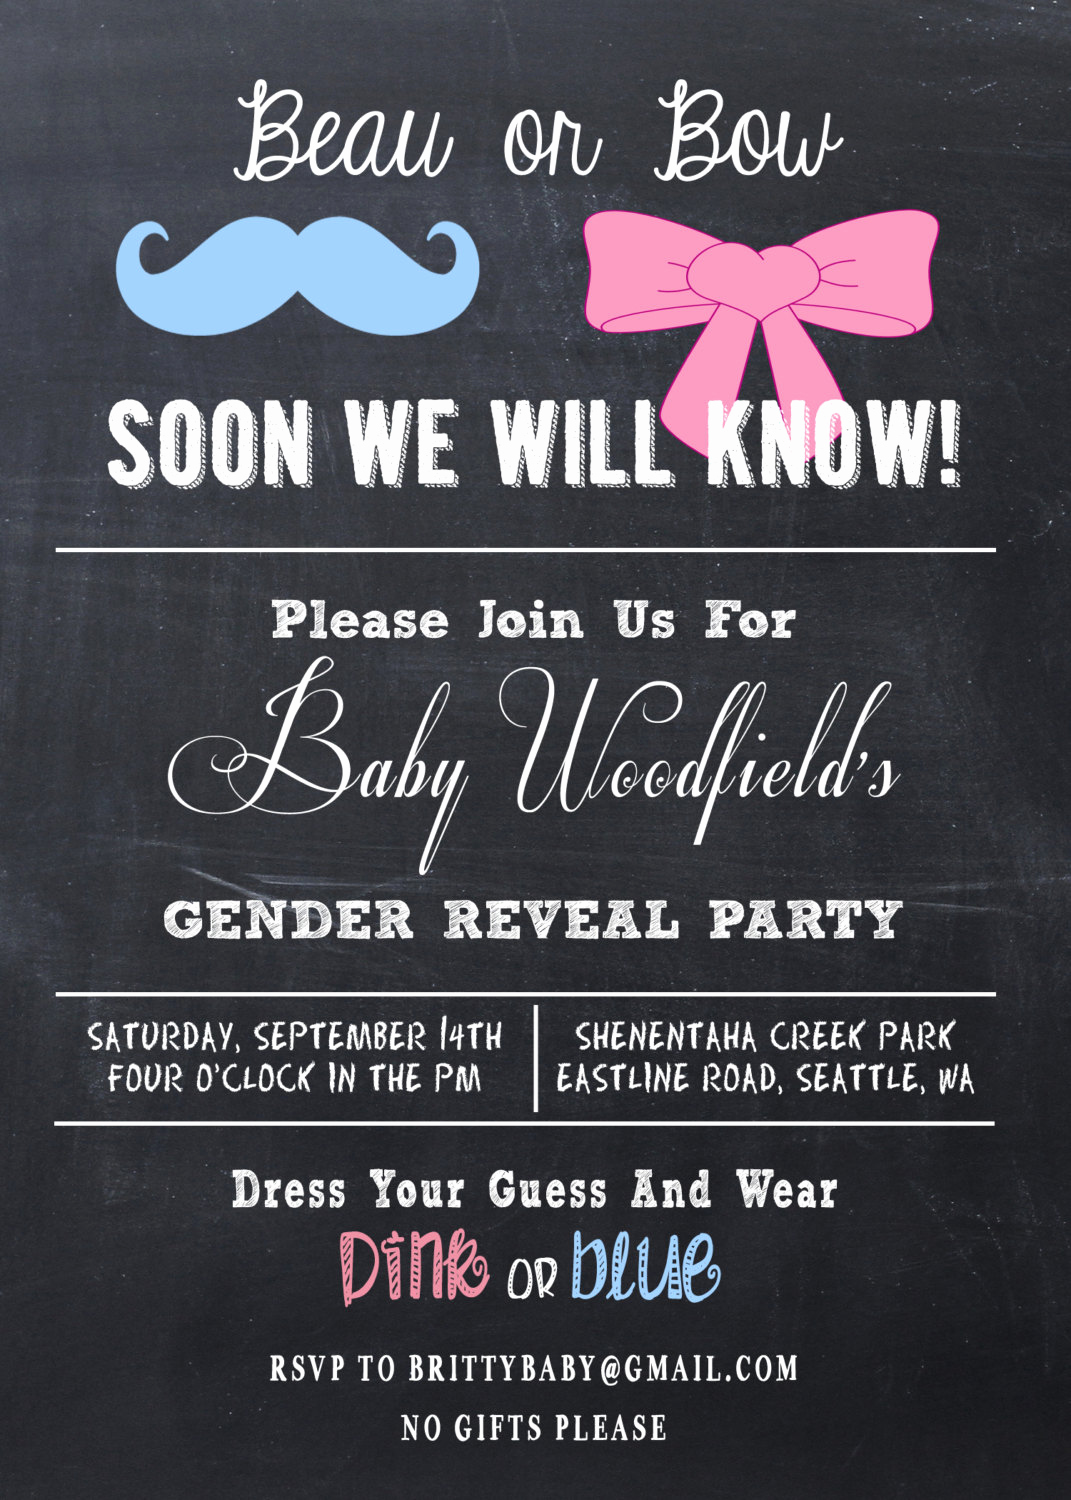 Reveal Party Invitation Ideas New Gender Reveal Party Invitation Beau or Bow by